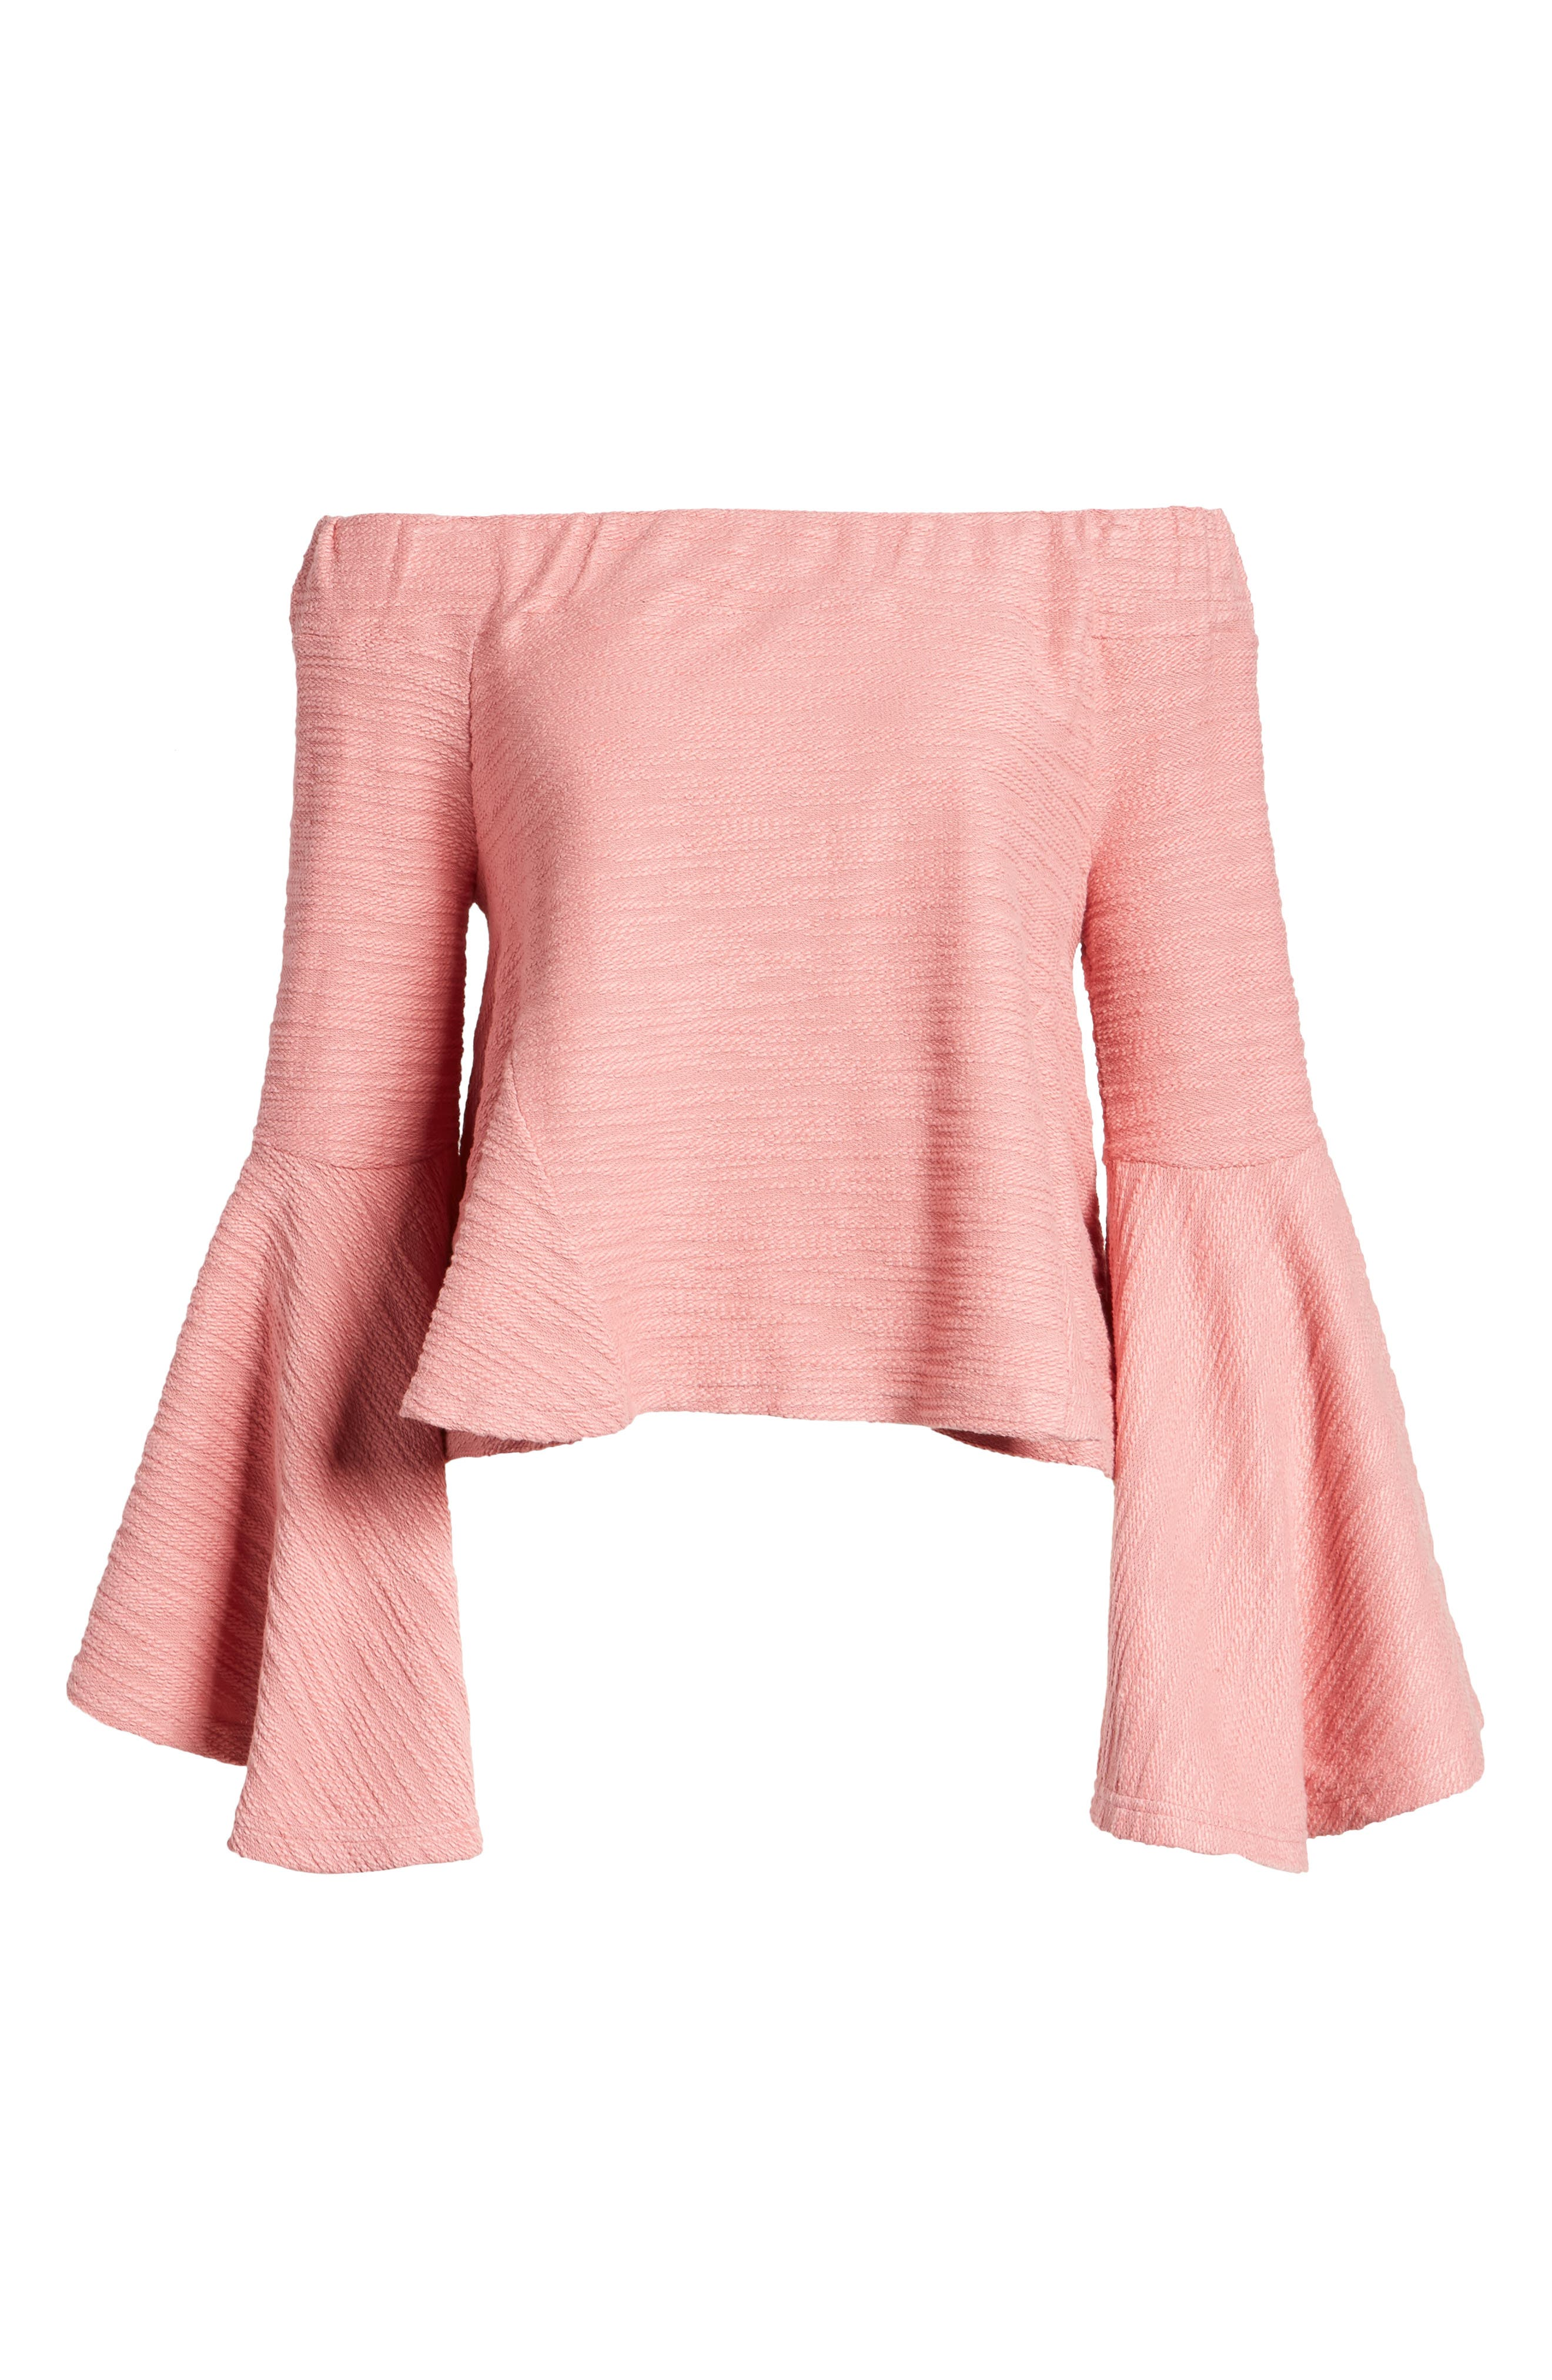 Off the Shoulder Bell Sleeve Top,                             Alternate thumbnail 6, color,                             650